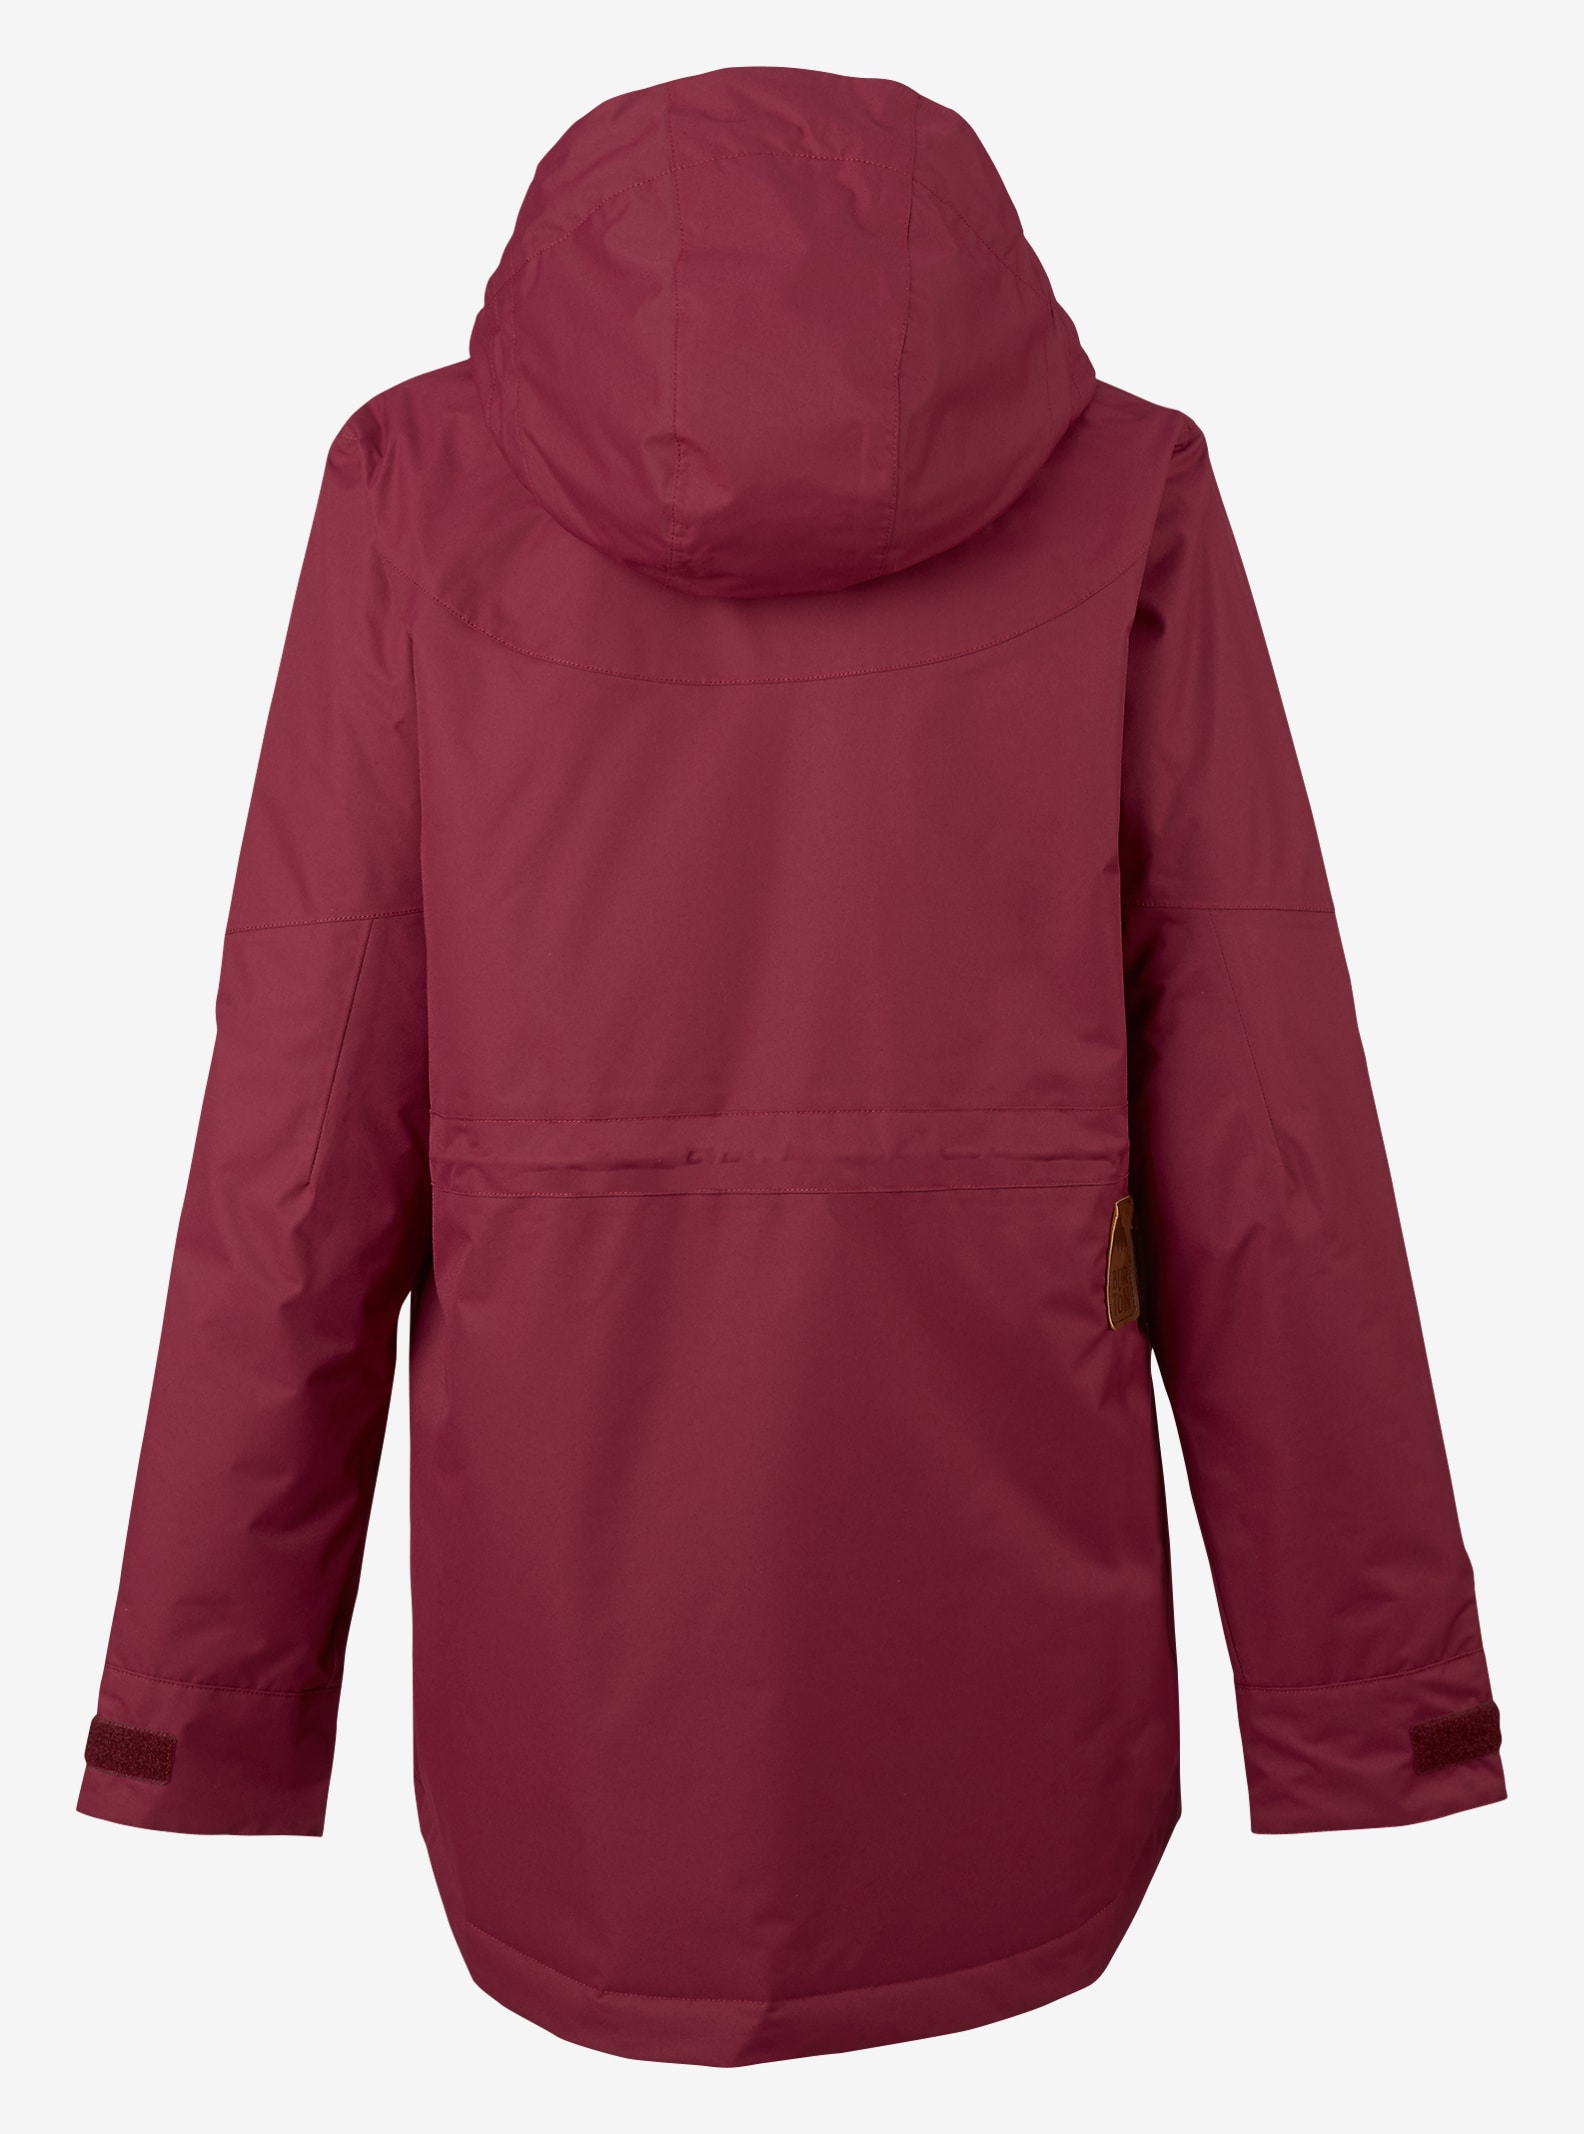 Burton Prowess Jacket shown in Sangria